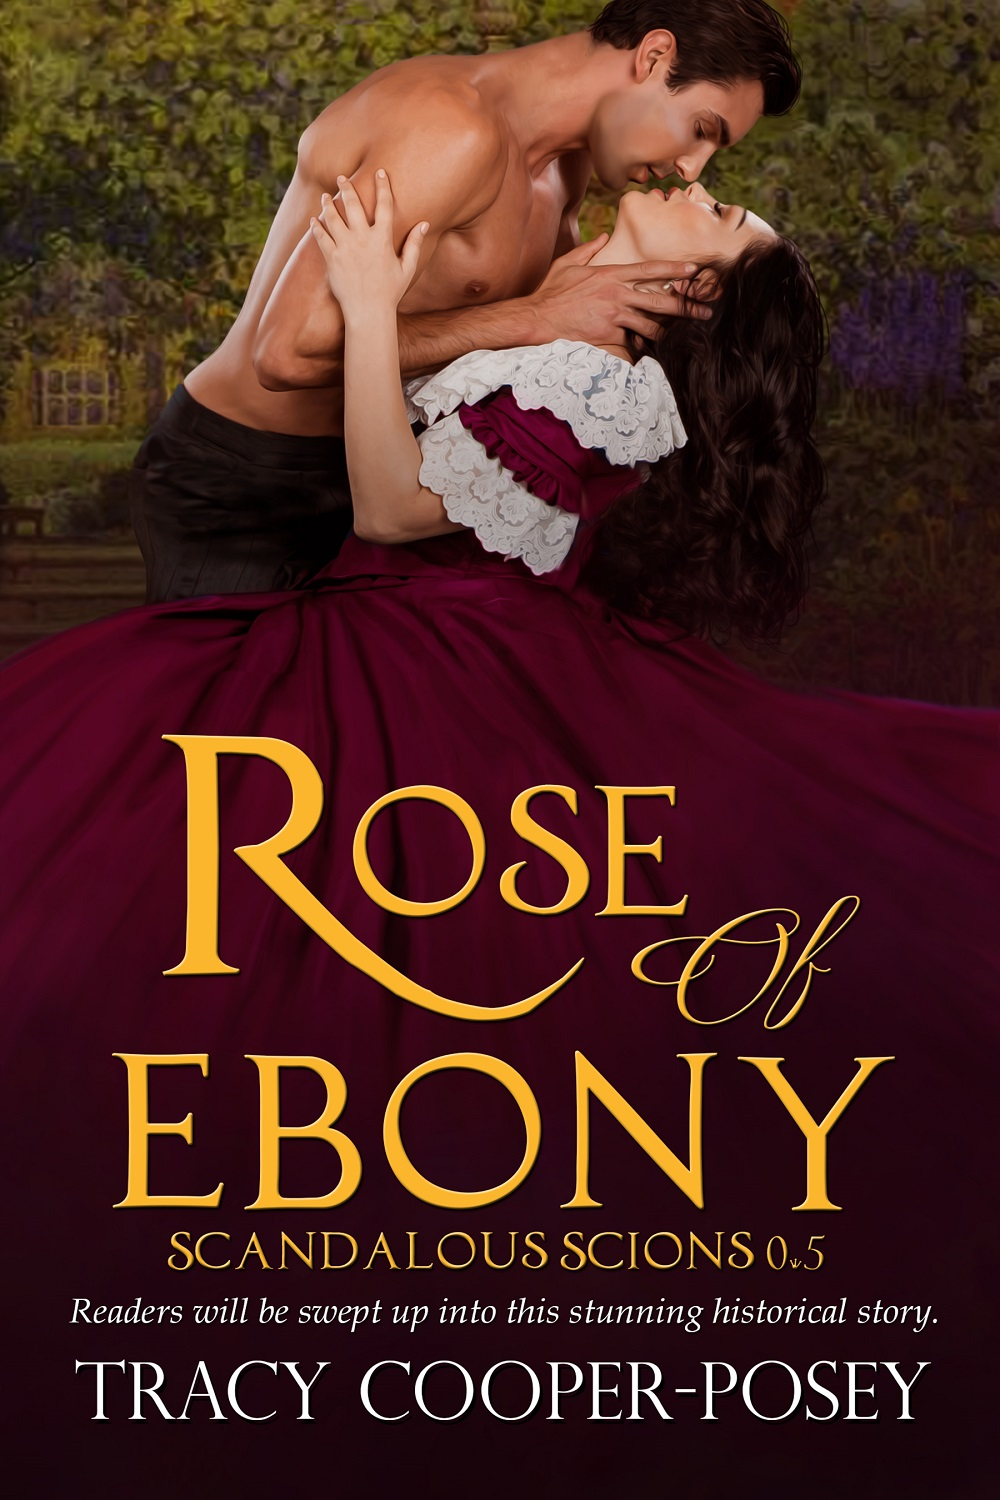 Try a New-to-You Historical Romance Author Today. Free.